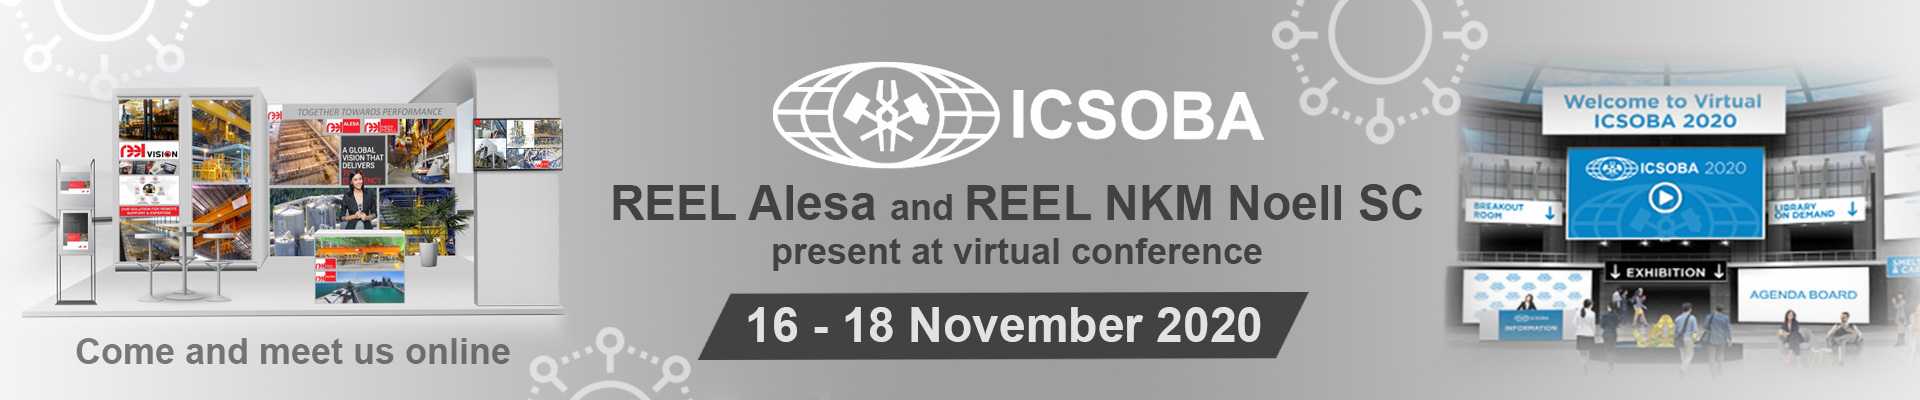 iscoba-virtual-event-REEL alesa et NKM Noell